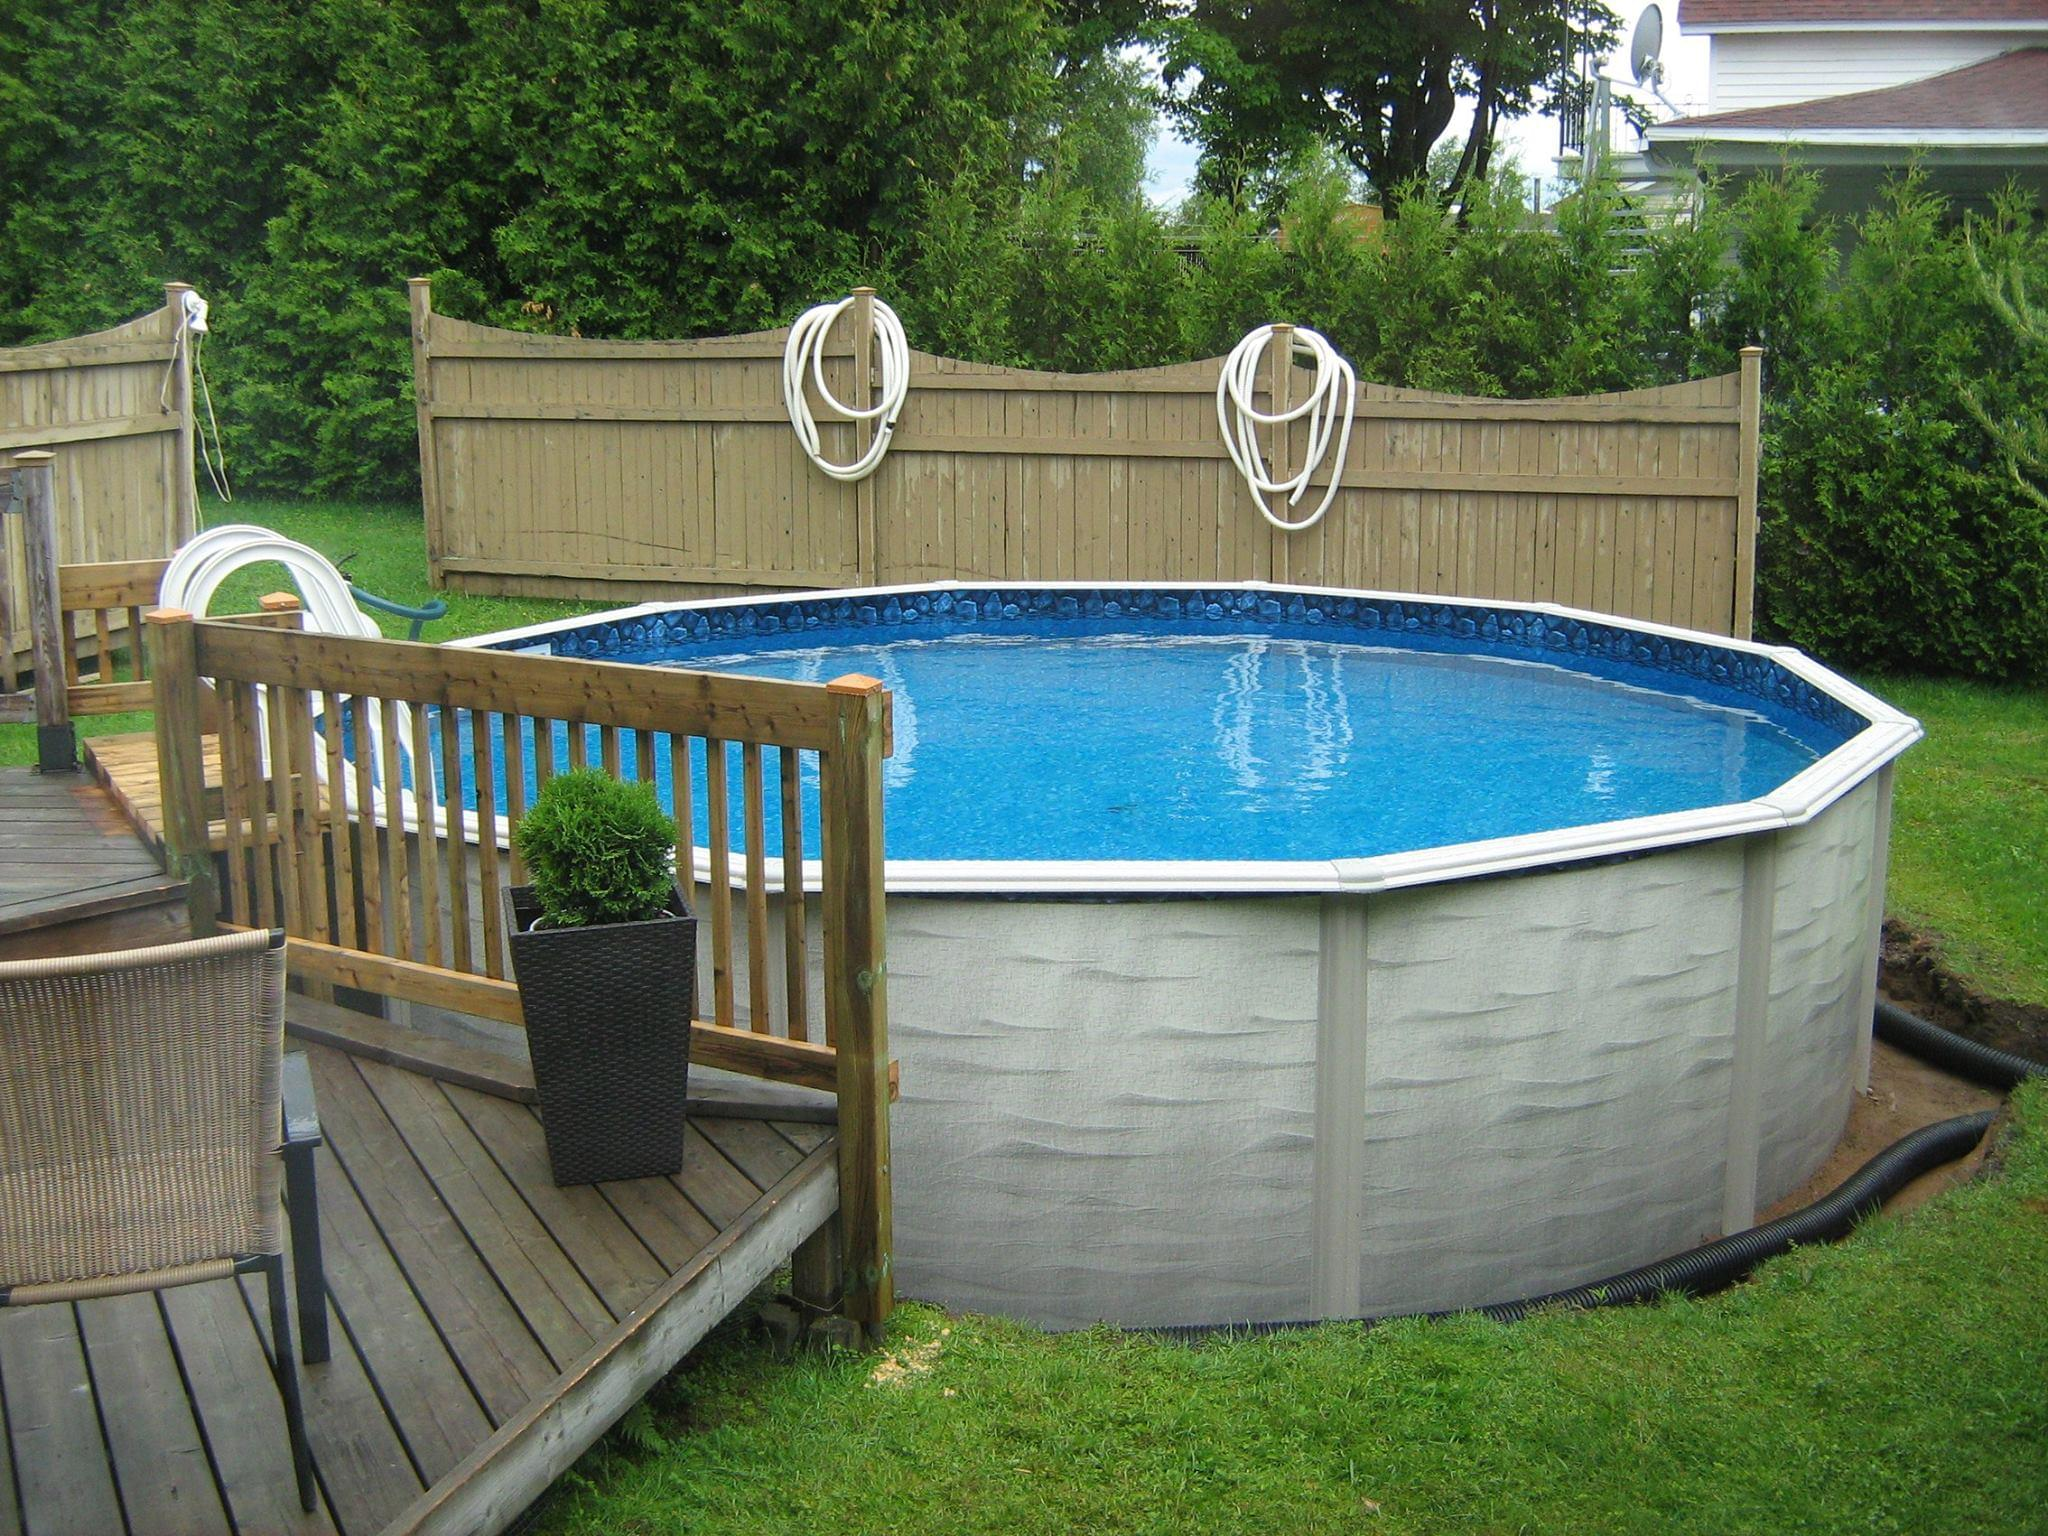 Evolution 15 ft round above ground p pool supplies canada - Custom above ground pool ...